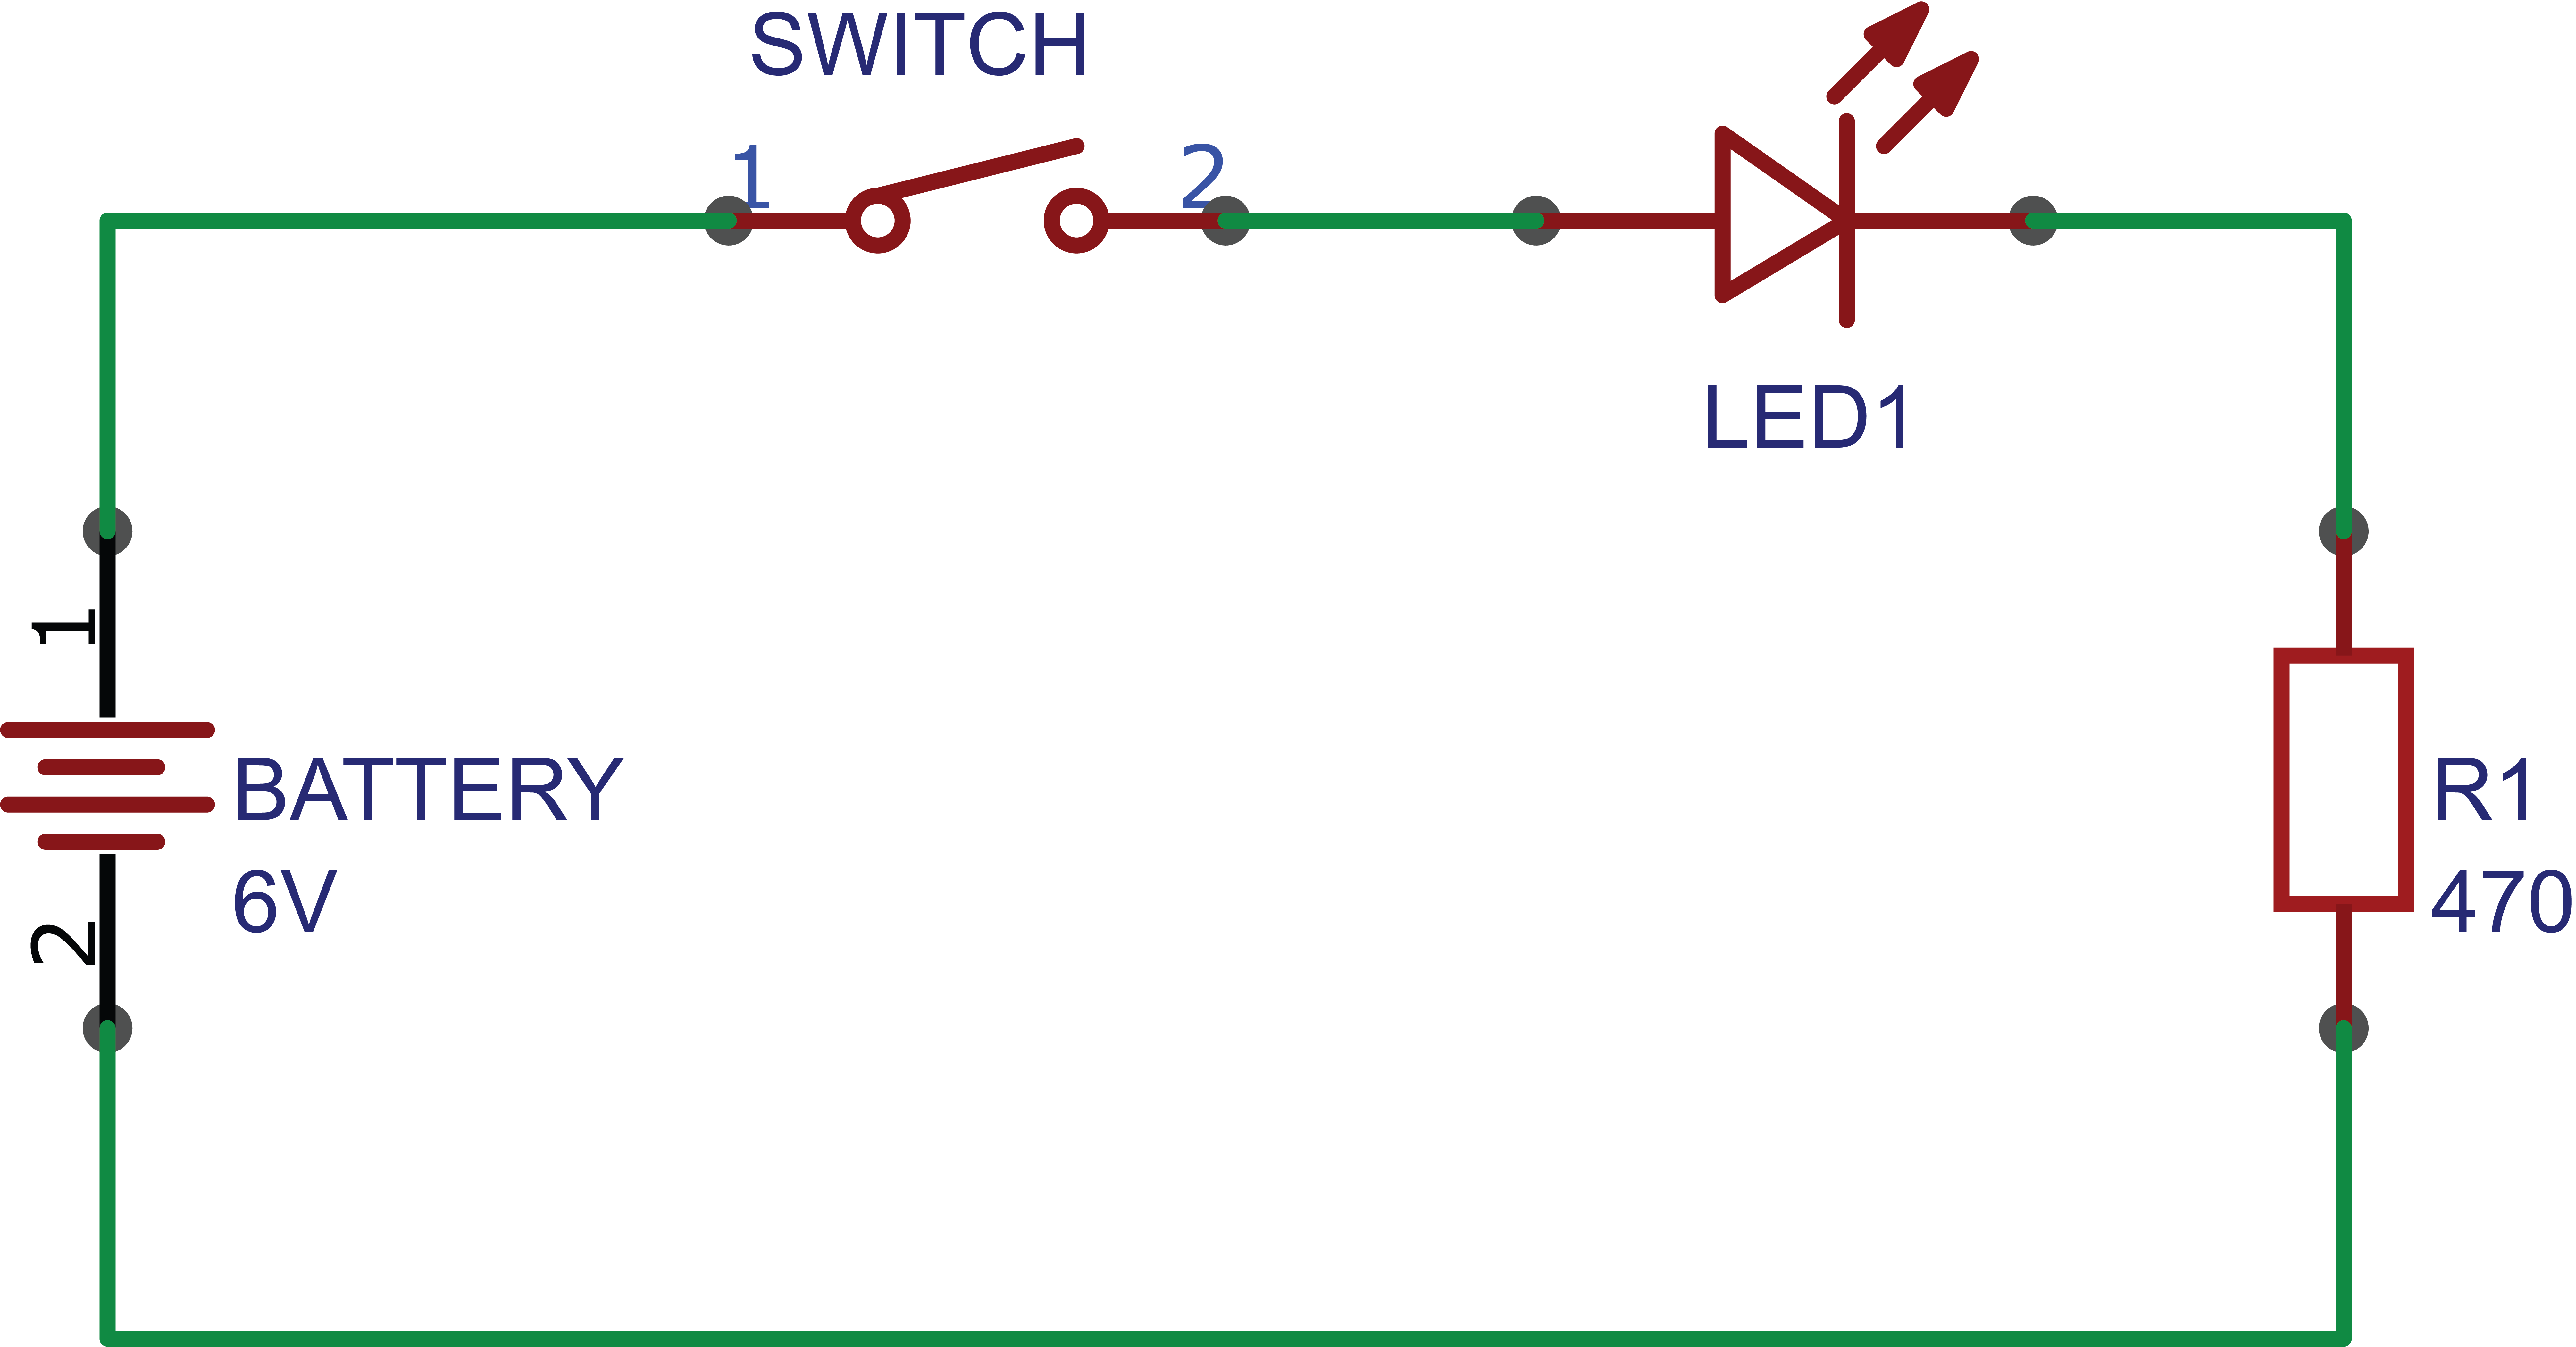 Simple Schematic of an LED and Battery Circuit